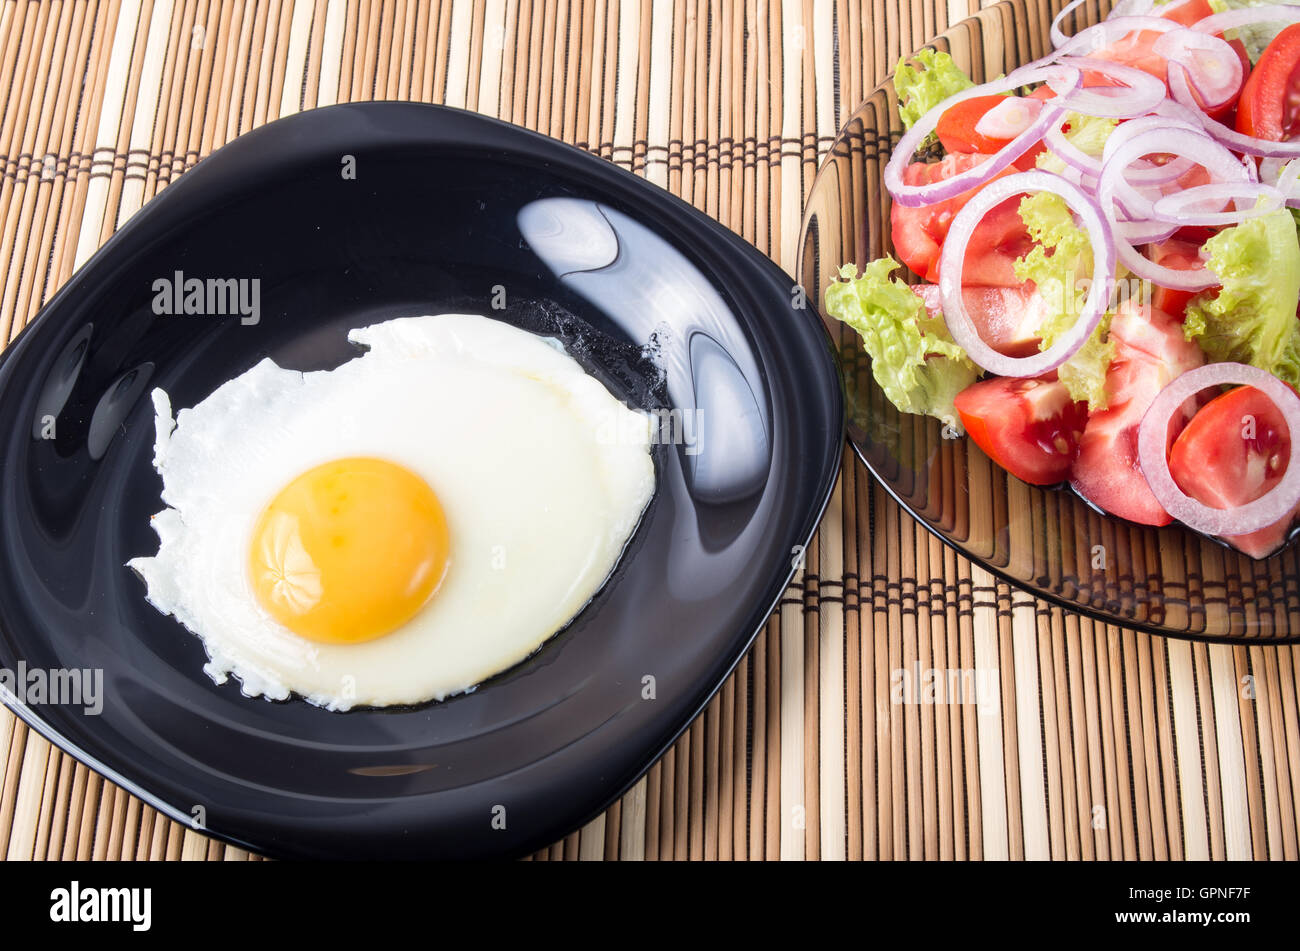 Home-cooked meals on the table - fried egg with yolk on a black plate and a salad of tomato, lettuce and onion on - Stock Image